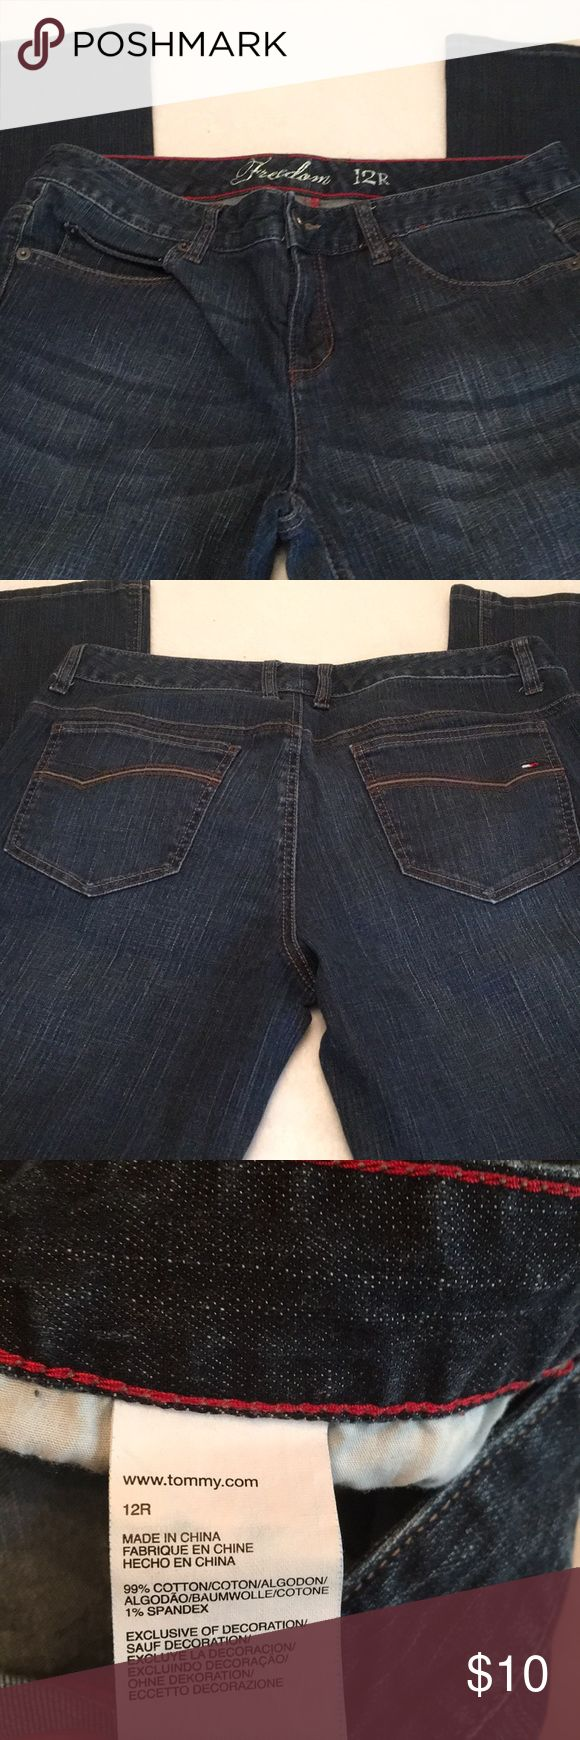 Tommy Hilfiger Jens Tommy Hilfiger Jeans size 12R Bootcut. Great Condition, submit offers through offer button. All offers considered Jeans